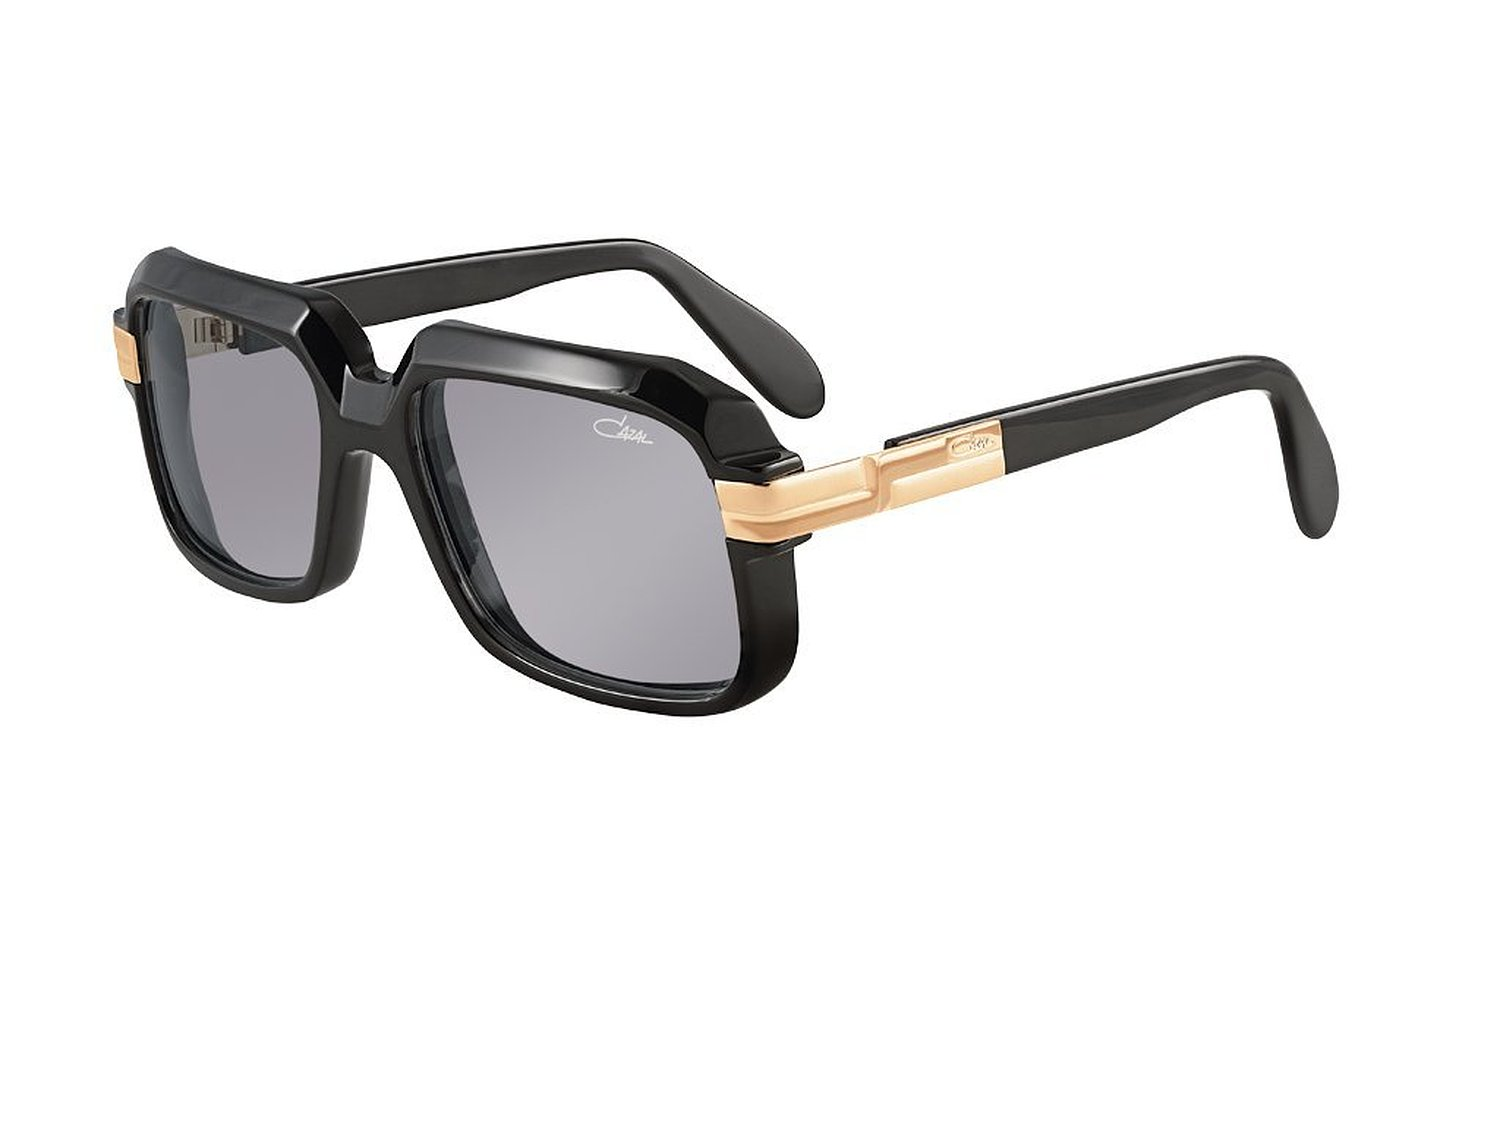 Cazal Schwarz Sonnebrille Sunglasses with Black Frames and Gold Accents